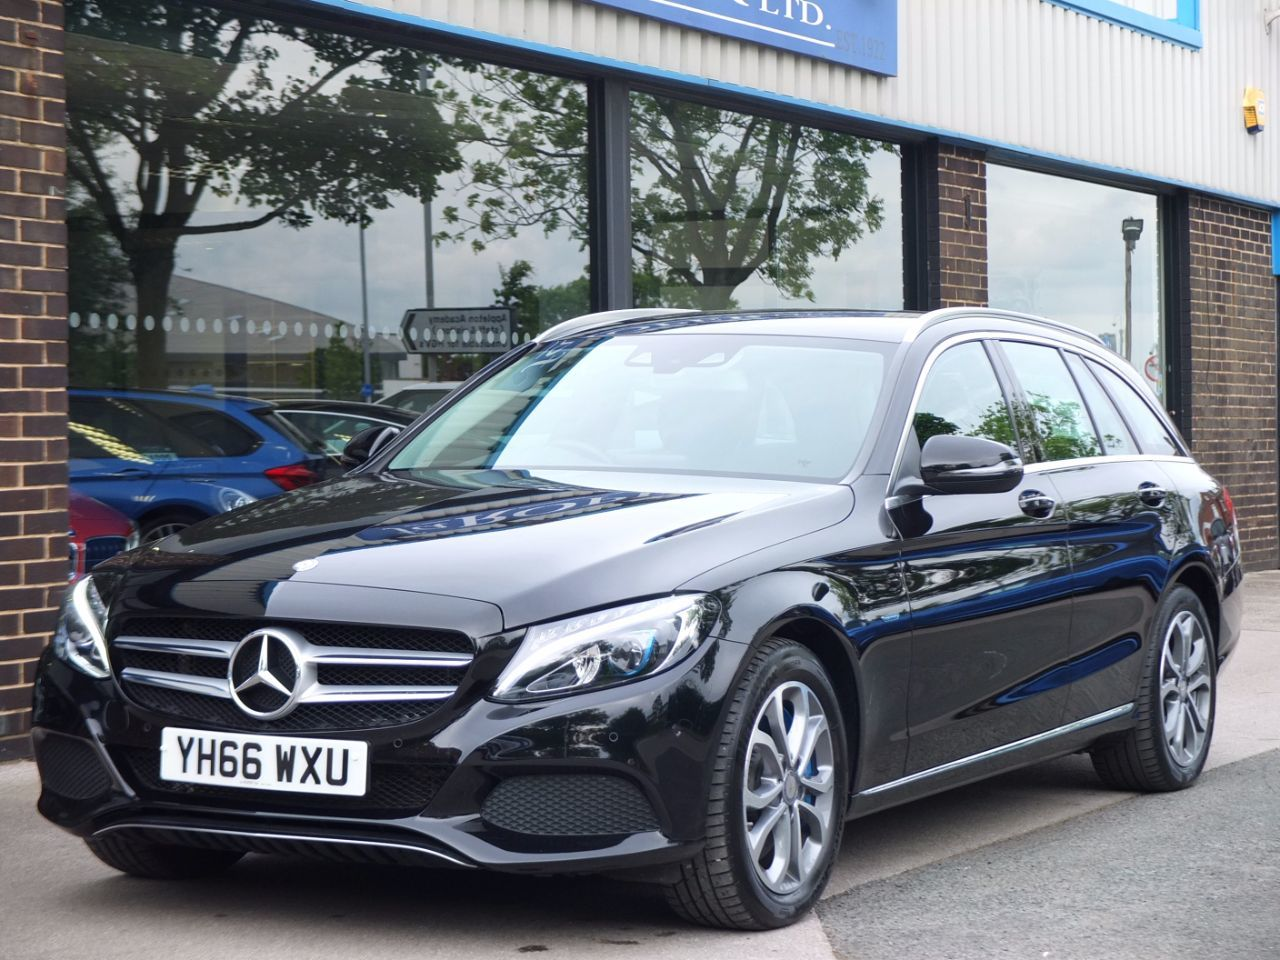 Mercedes-Benz C Class 2.0 Estate C350e Sport Auto (PHEV Plug-in Hybrid) Estate Hybrid Obsidian Black MetallicMercedes-Benz C Class 2.0 Estate C350e Sport Auto (PHEV Plug-in Hybrid) Estate Hybrid Obsidian Black Metallic at fa Roper Ltd Bradford